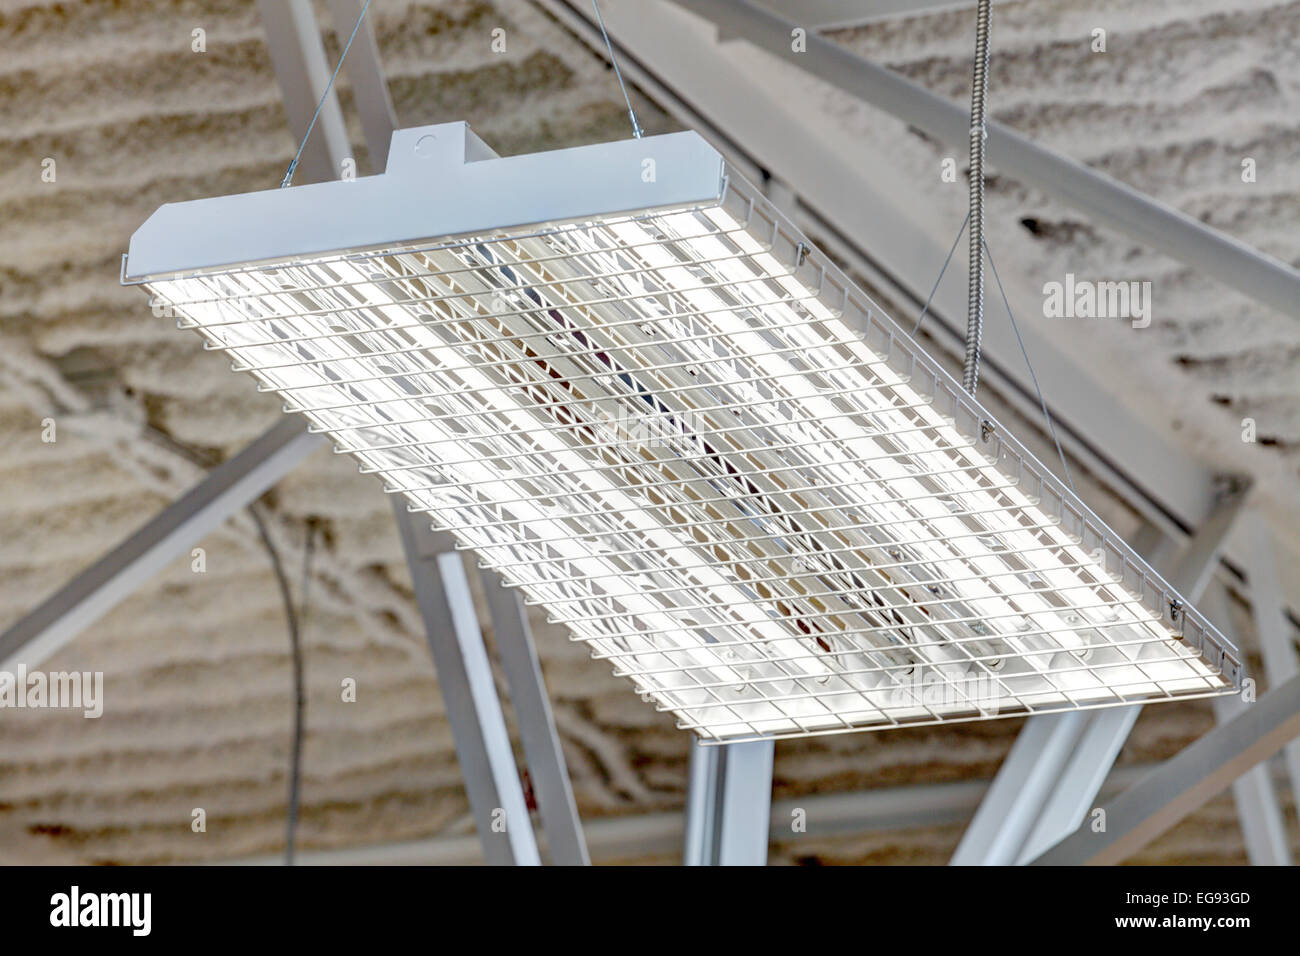 A high intensity fluorescent light fixture in a commercial setting ...